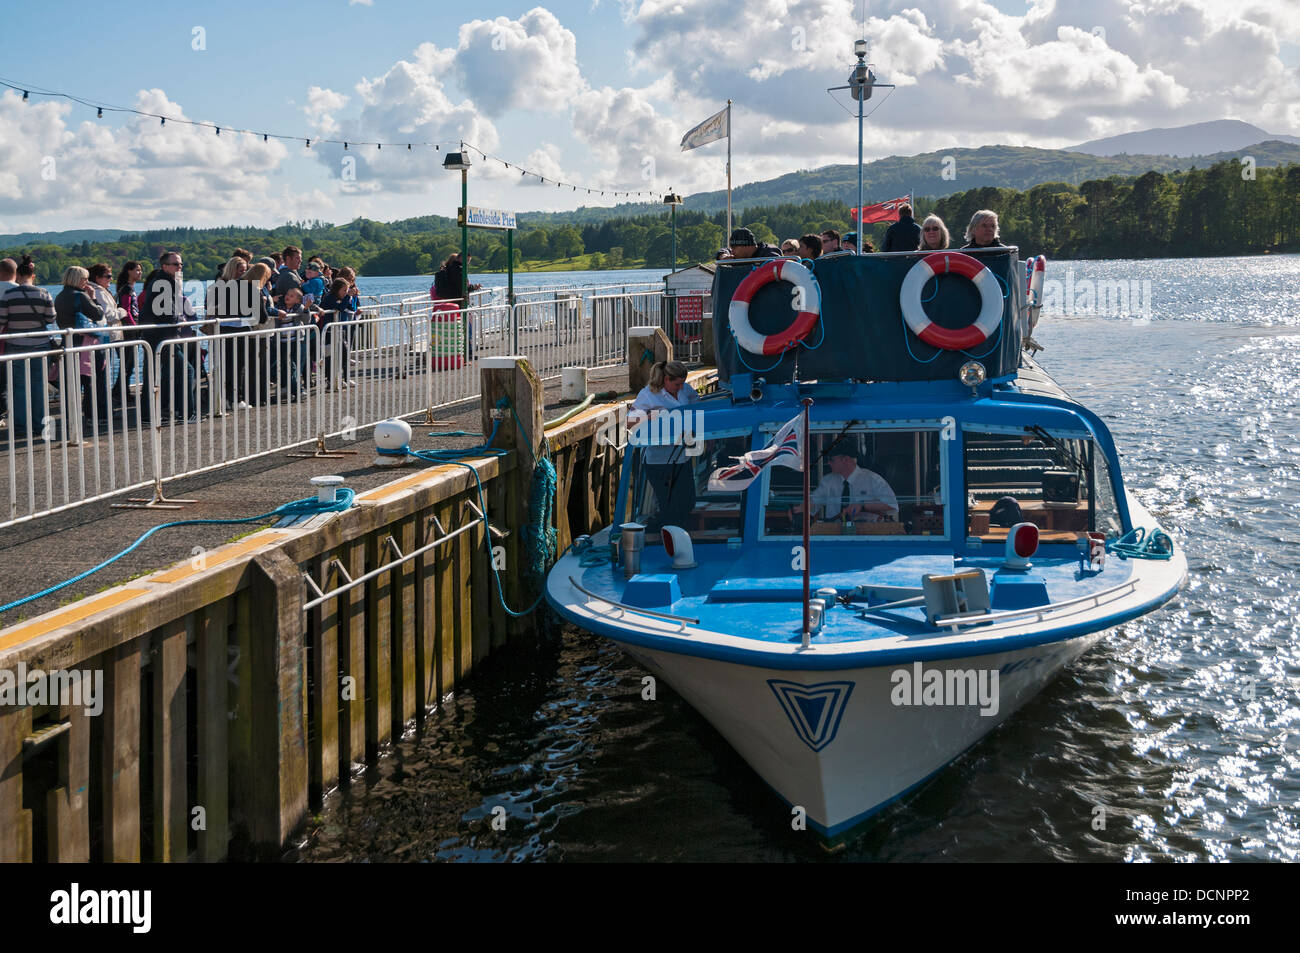 Great Britain, England, Cumbria, Lake District, Lake Windermere, tour boat Miss Cumbria IV at Ambleside Pier - Stock Image